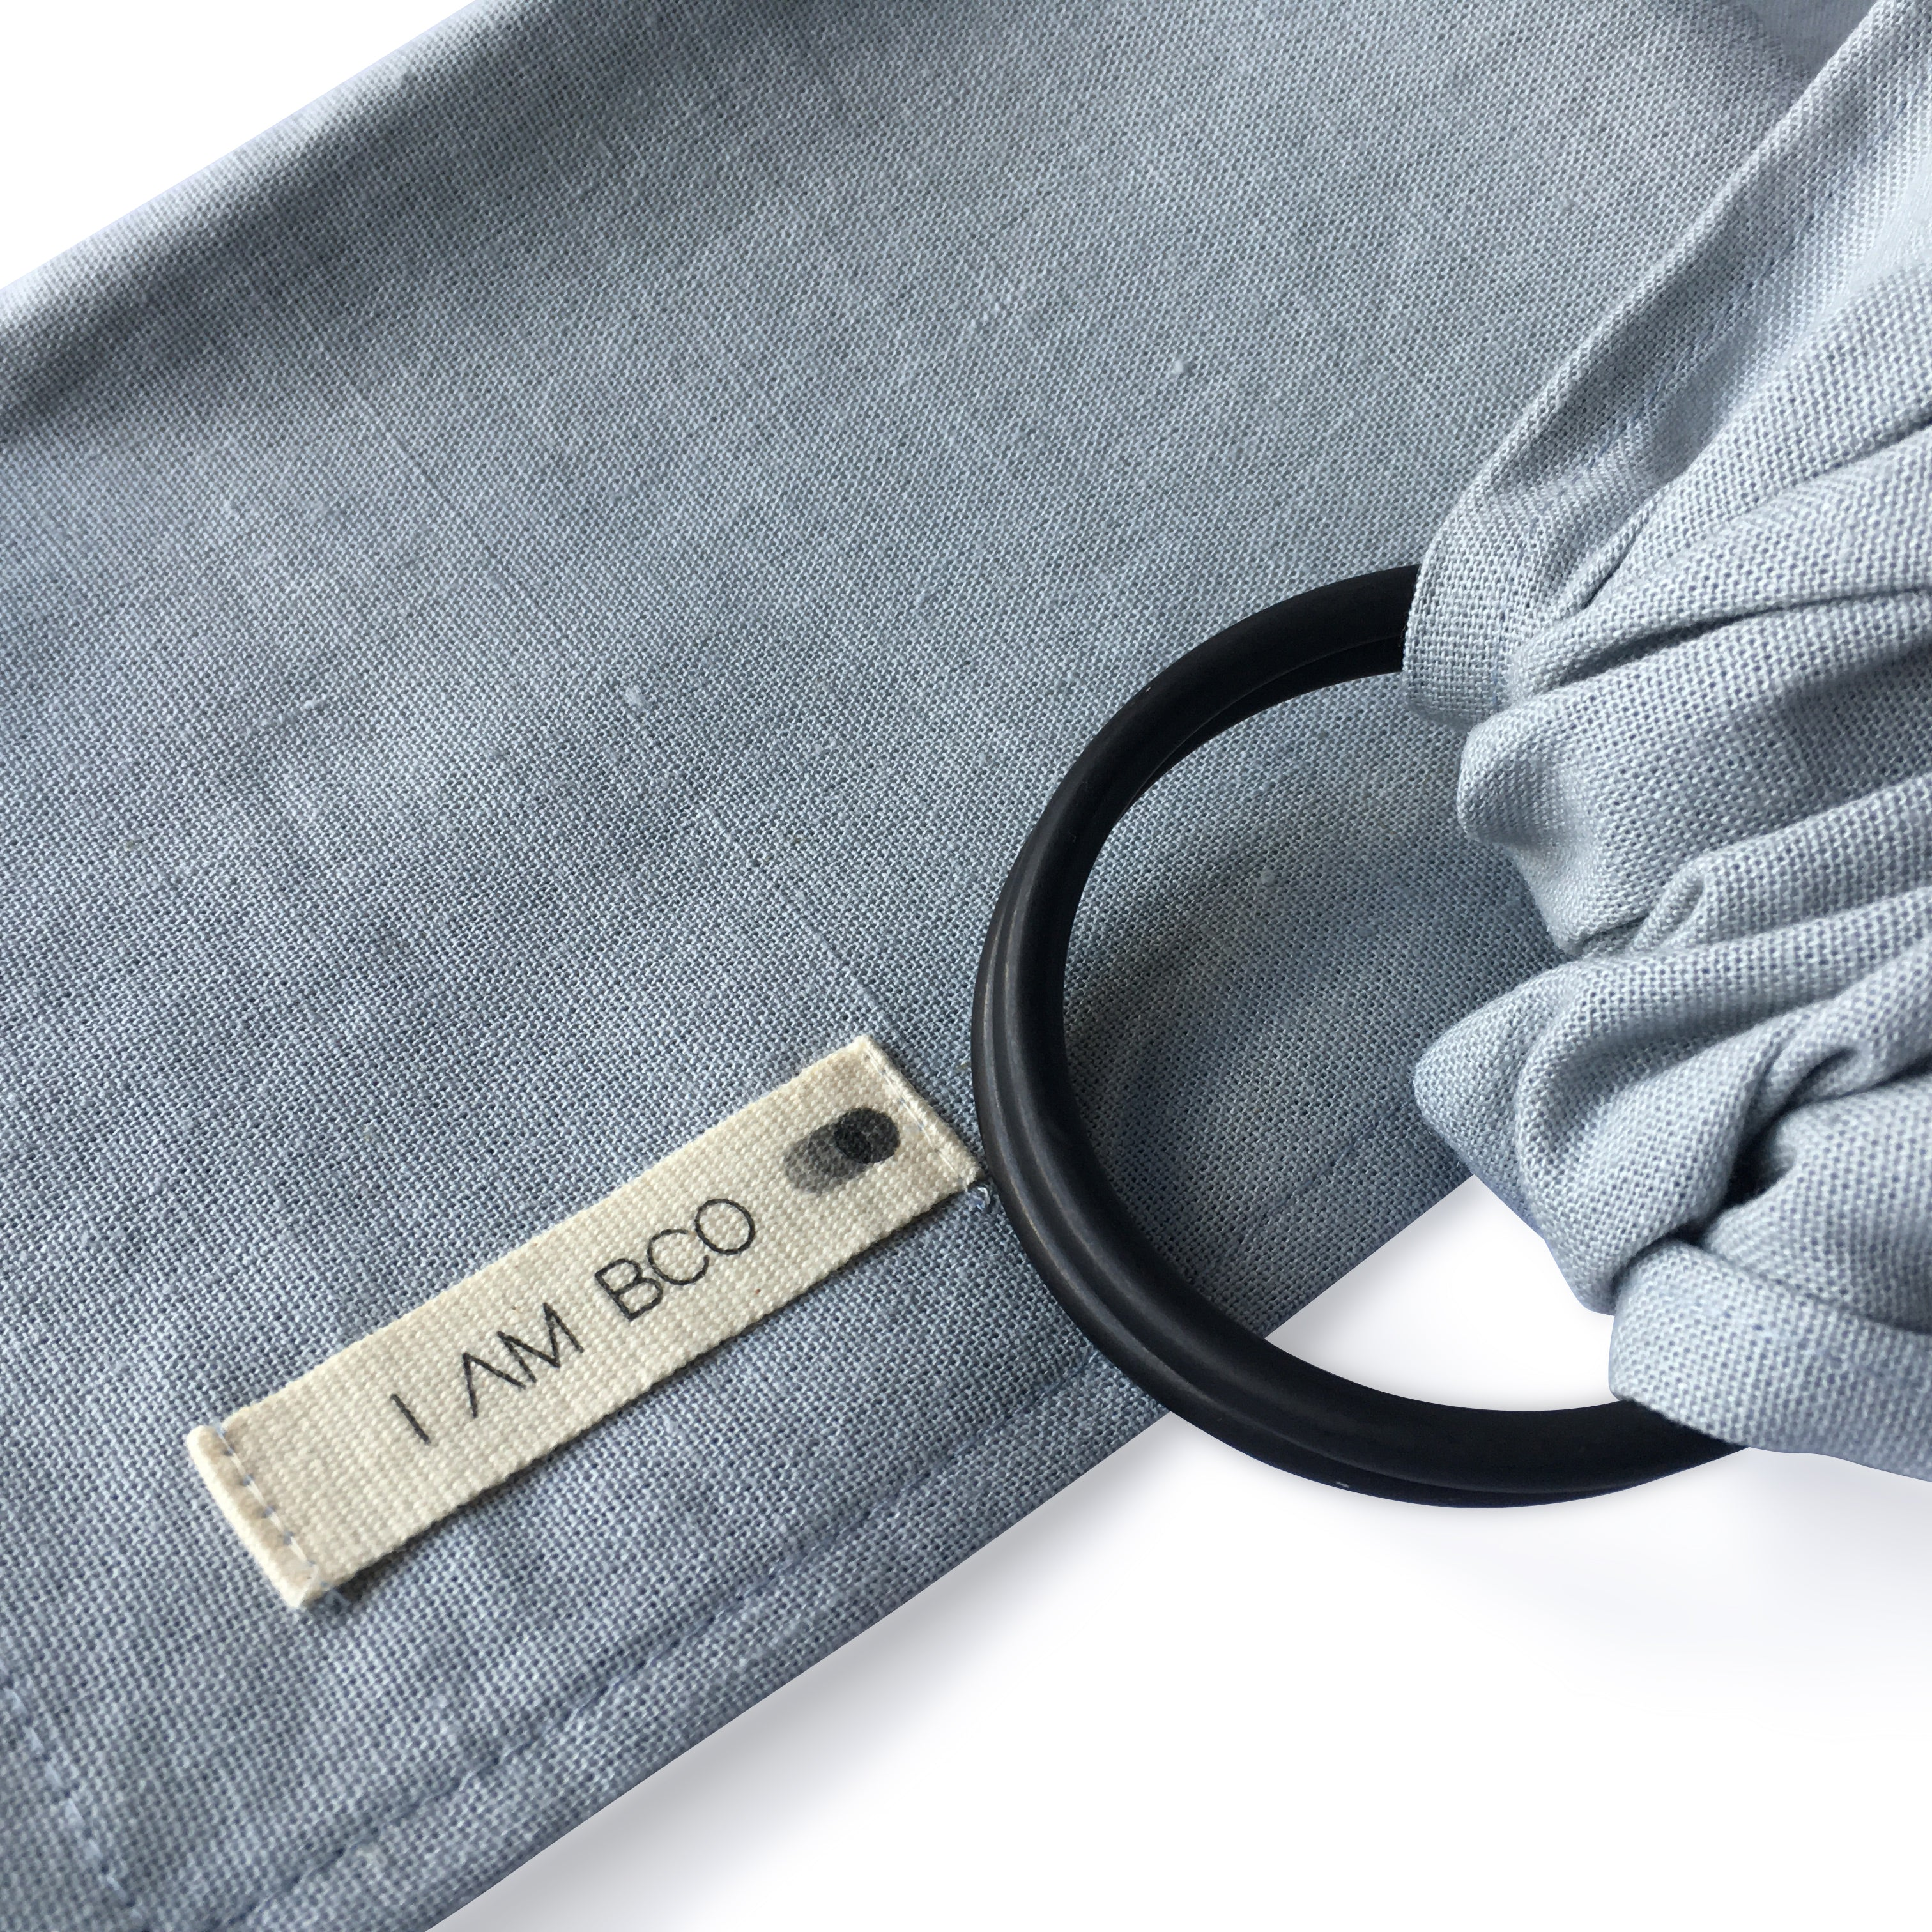 I AM BCO Conscious Lifestyle Single Layer Baby Sling Black Aluminium ring Linen Cotton Blend Grey